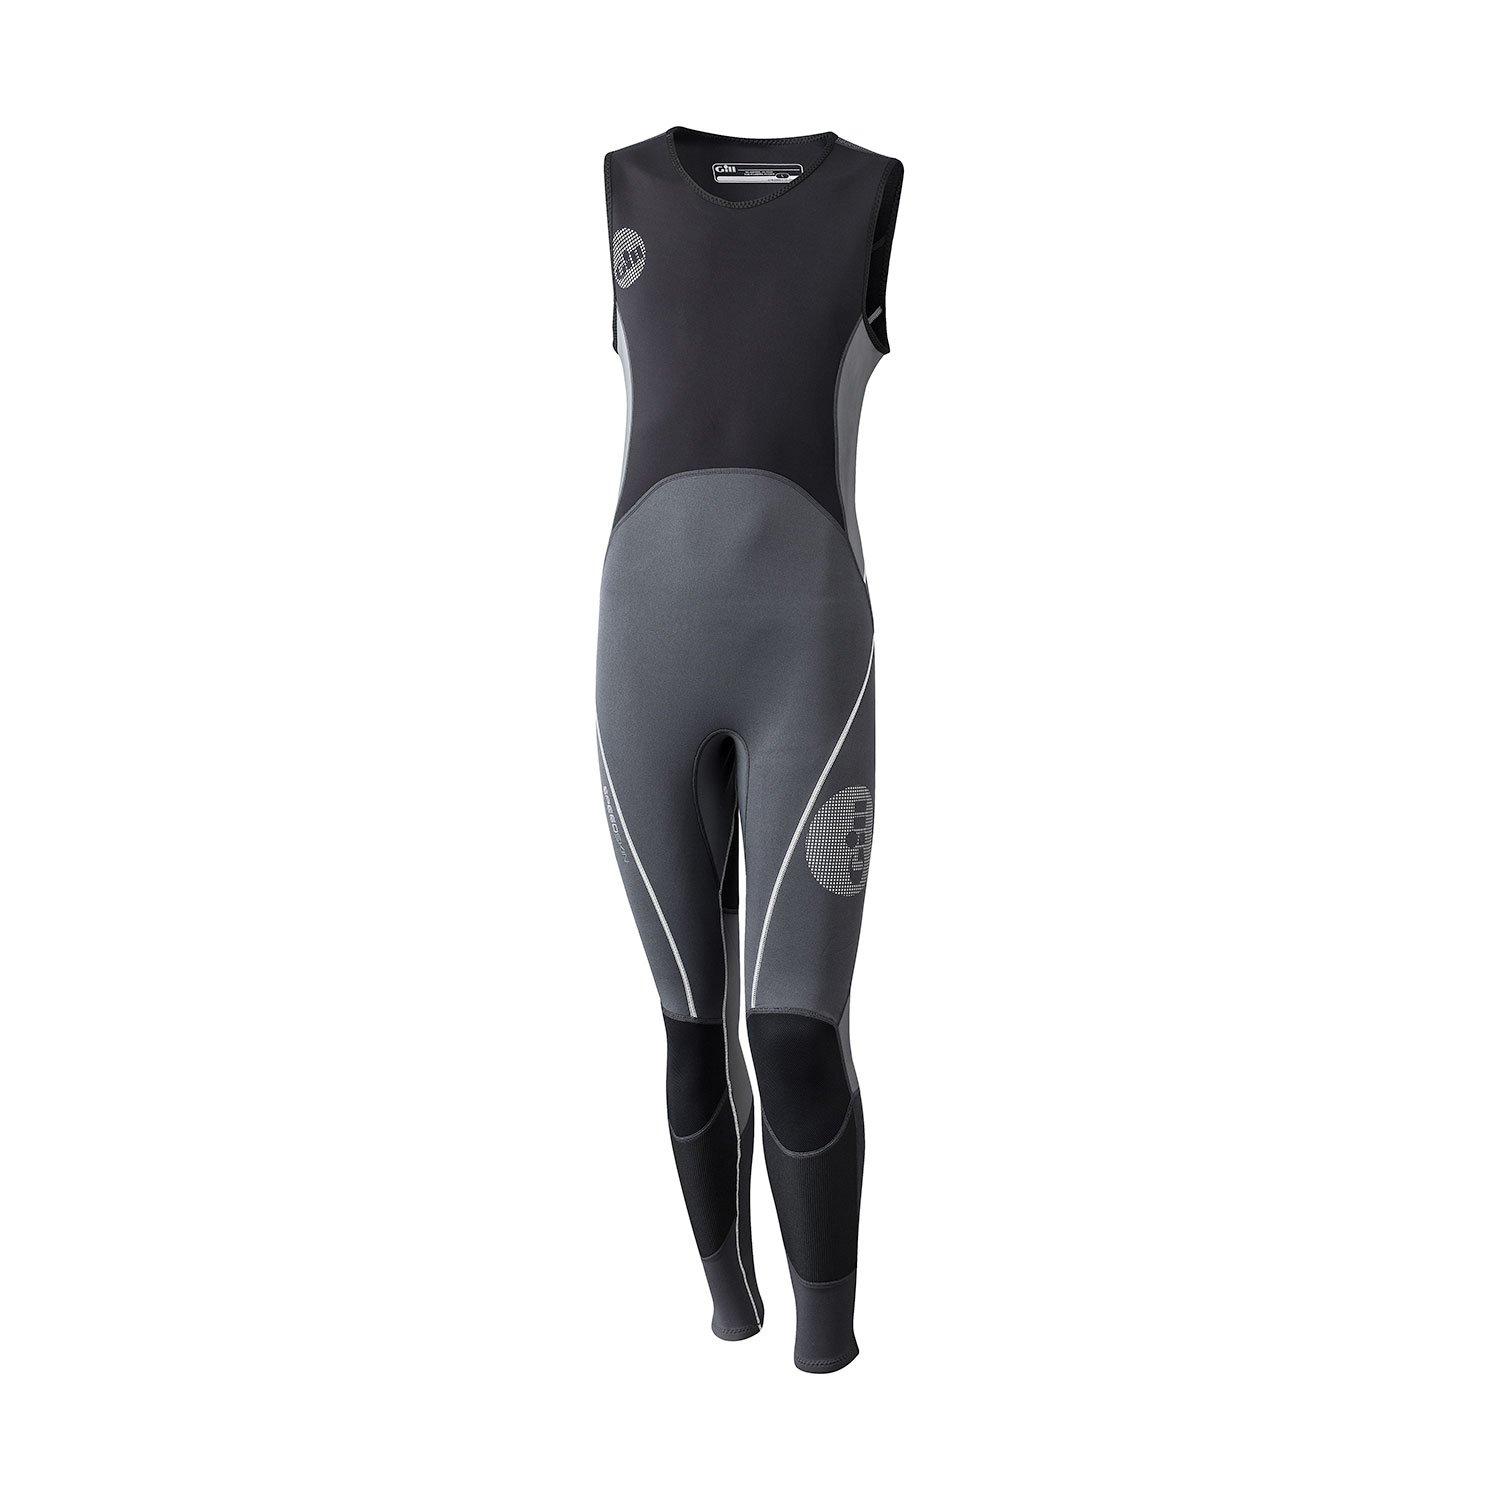 GILL Speedskin 2MM Skiff Suit Graphite Ash - Lightweight - Easy Stretch UV Sun Protection and SPF Properties